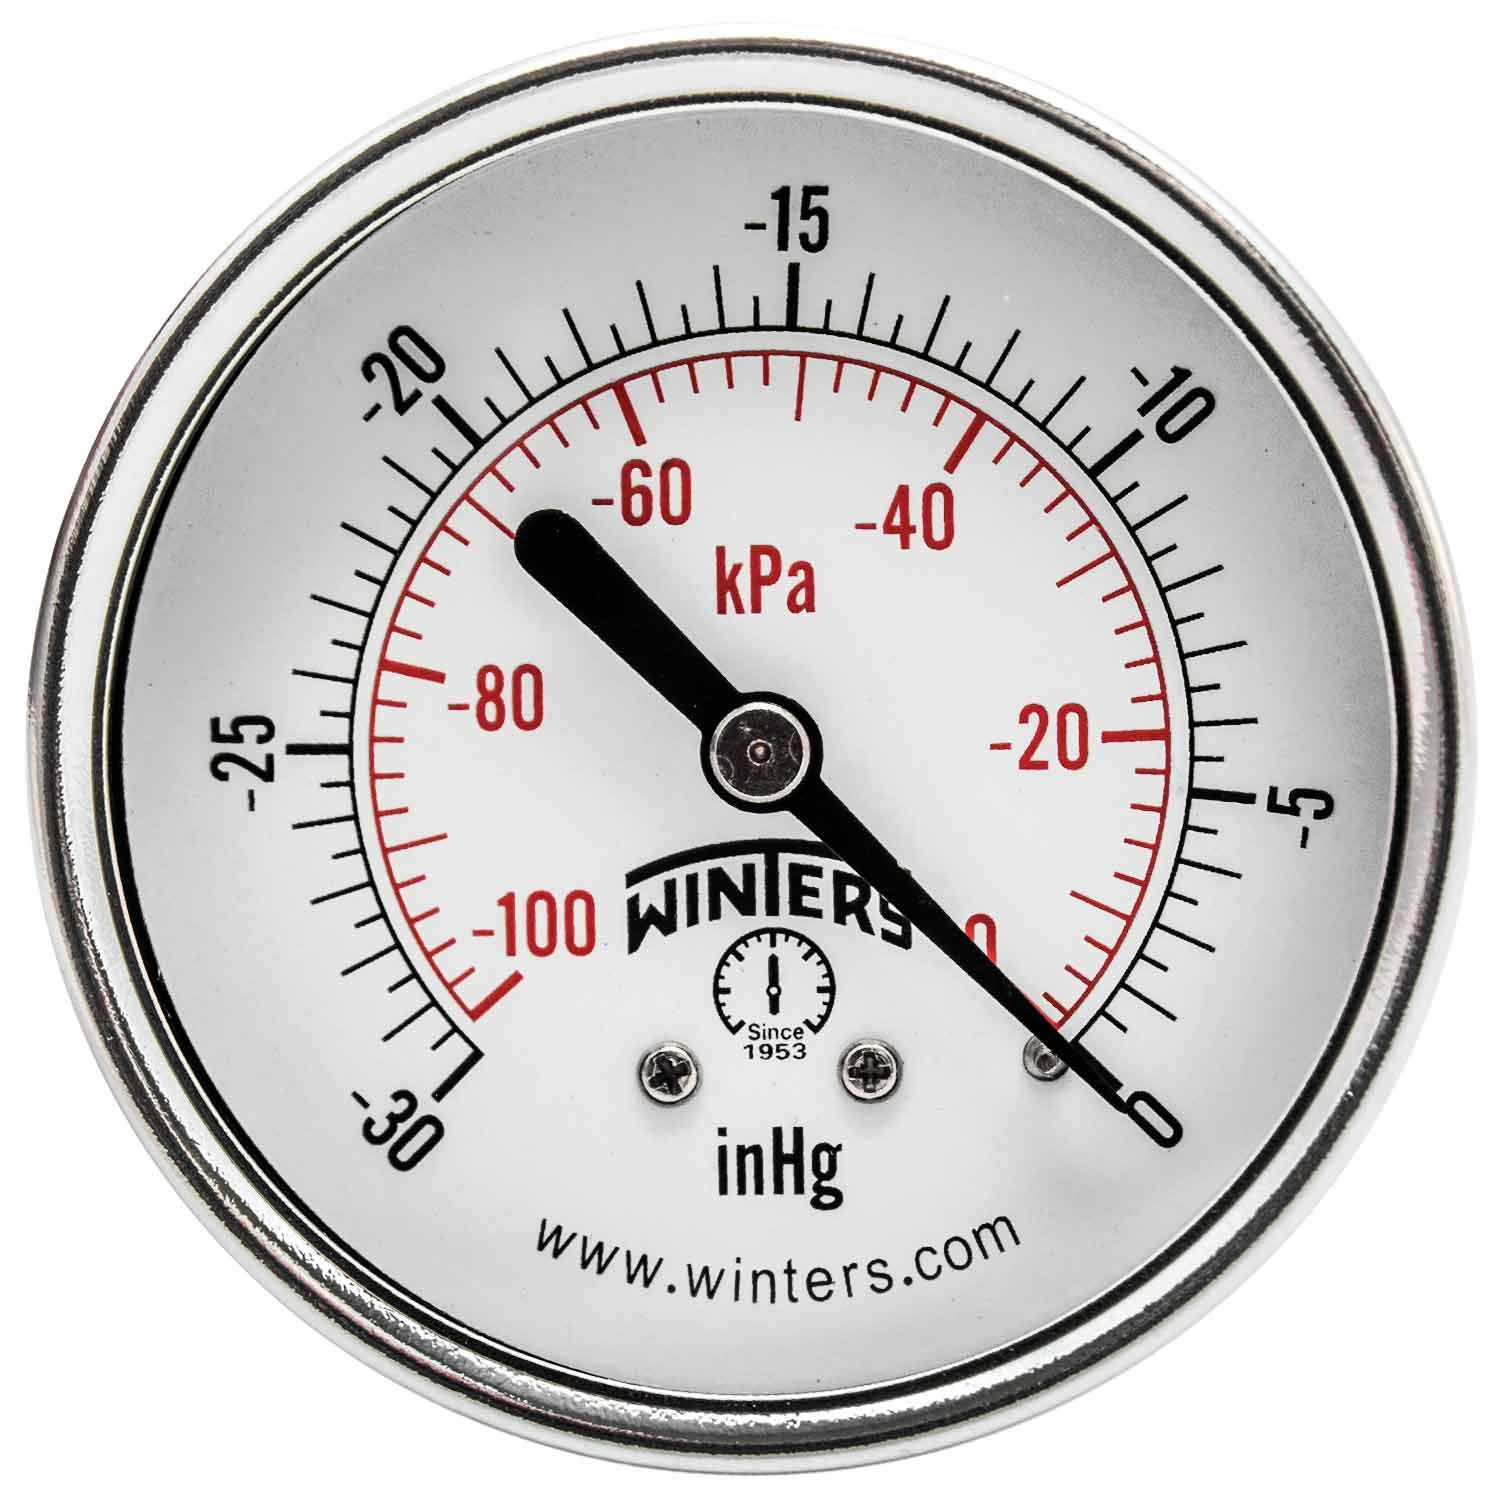 "Winters PEM Series Steel Dual Scale Economy Pressure Gauge, 30""Hg Vacuum/kpa, 2-1/2"" Dial Display, +/-3-2-3% Accuracy, 1/4"" NPT Center Back Mount"